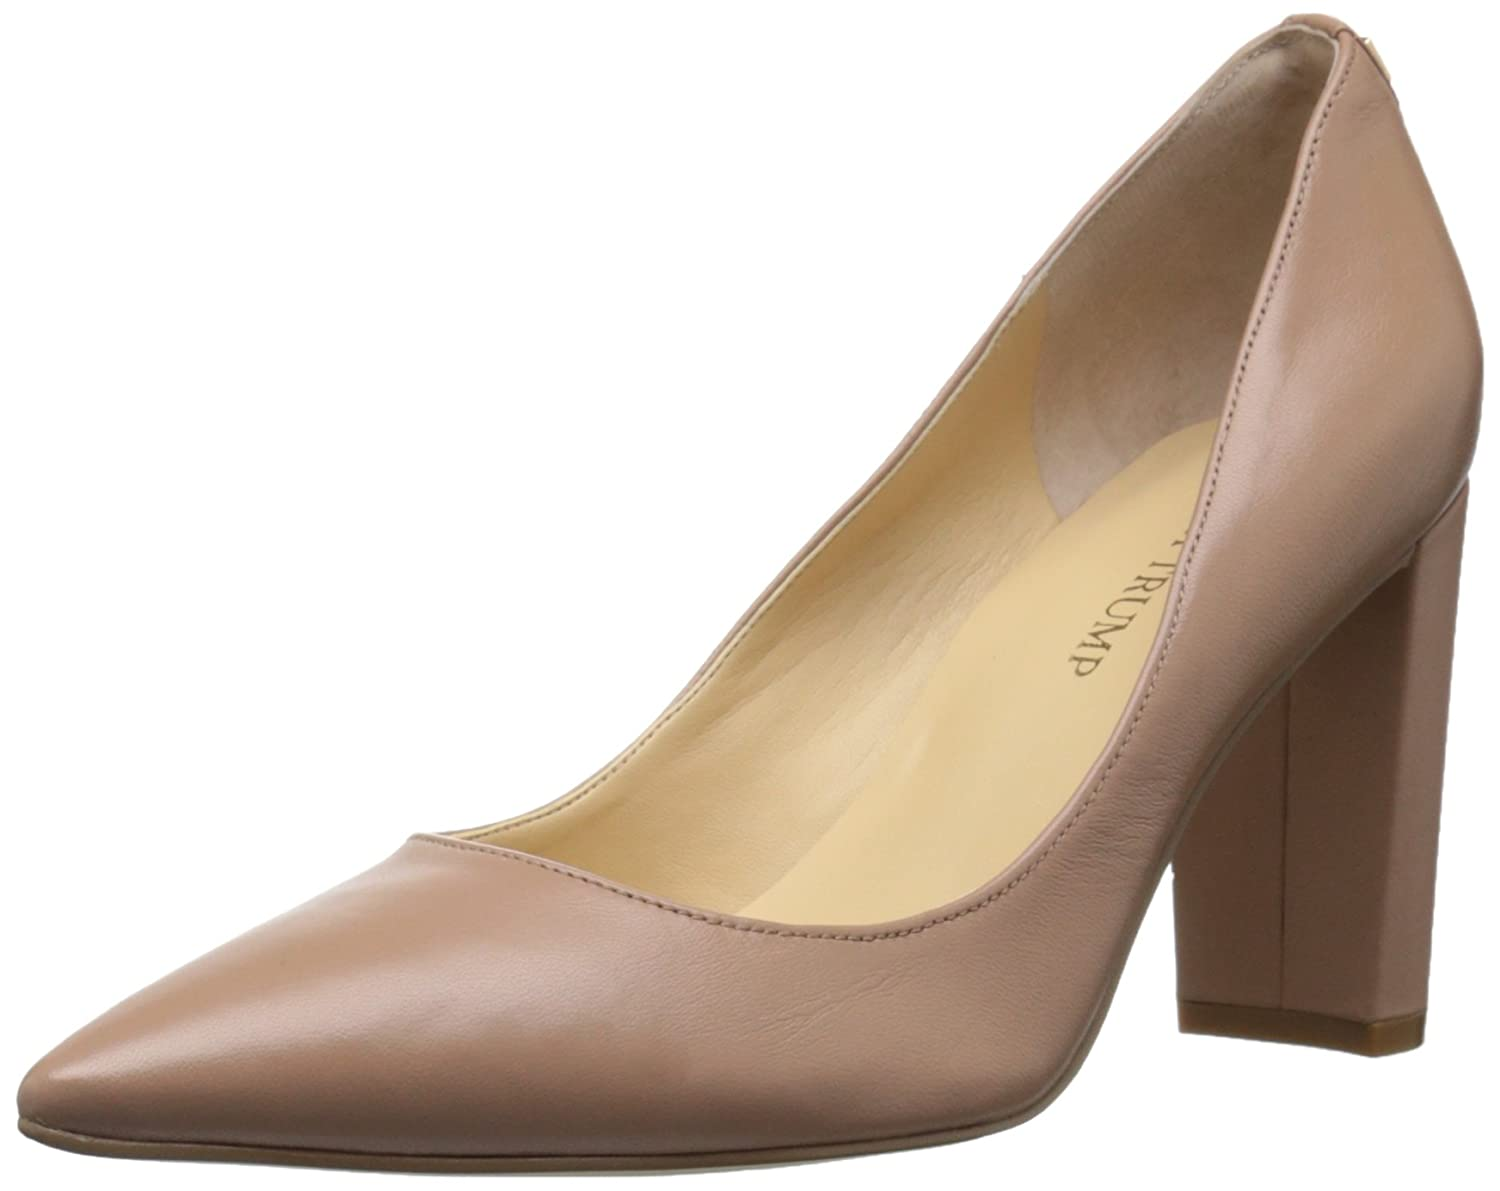 Ivanka Trump Women's Katie Dress Pump B01CDUSZ1A 6 B(M) US|Natural Leather